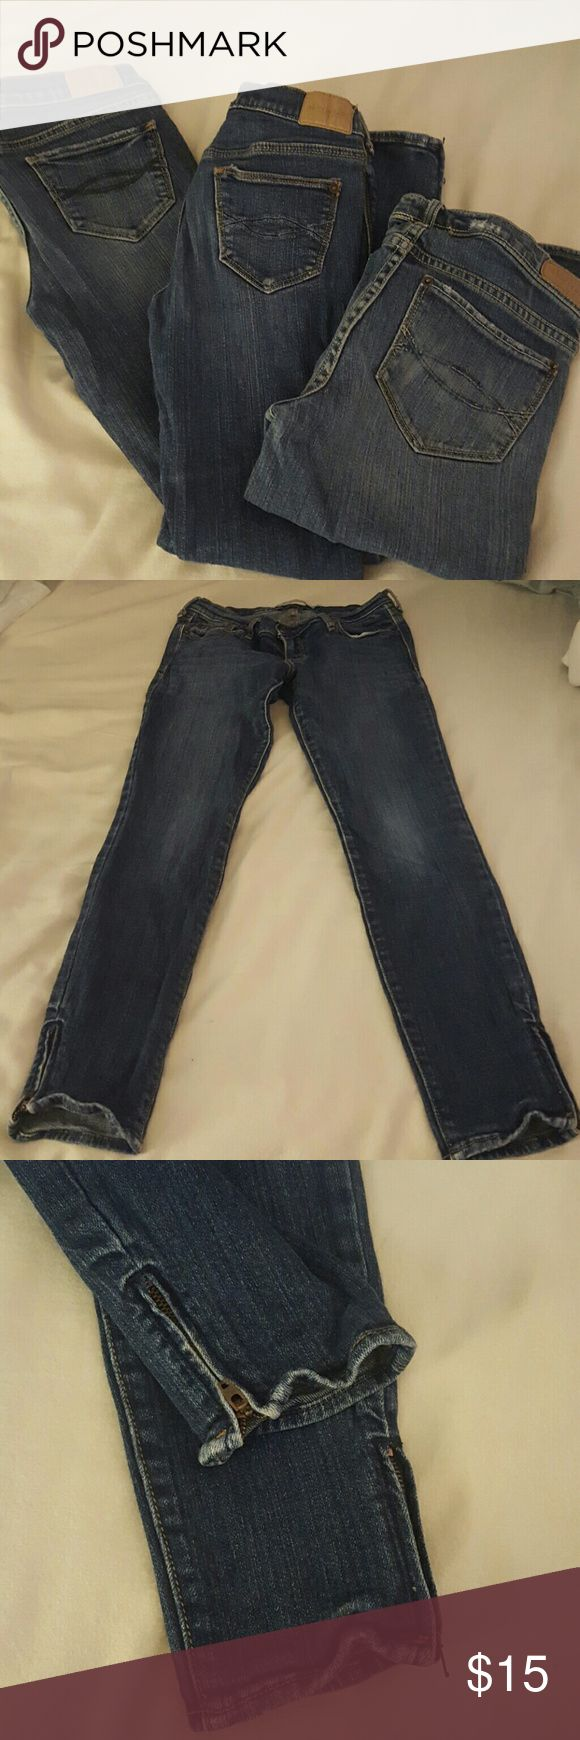 Girls size 14 Abercrombie jeans & capris 1 pair of full length Abercrombie jeans, 1 pair of Abercrombie ankle length skinny jean with zipper detail at ankles and 1 pair of Abercrombie Jean Bermuda shorts/capris.  All 3 are stretchy and all gently used. Abercombie Kids Bottoms Jeans